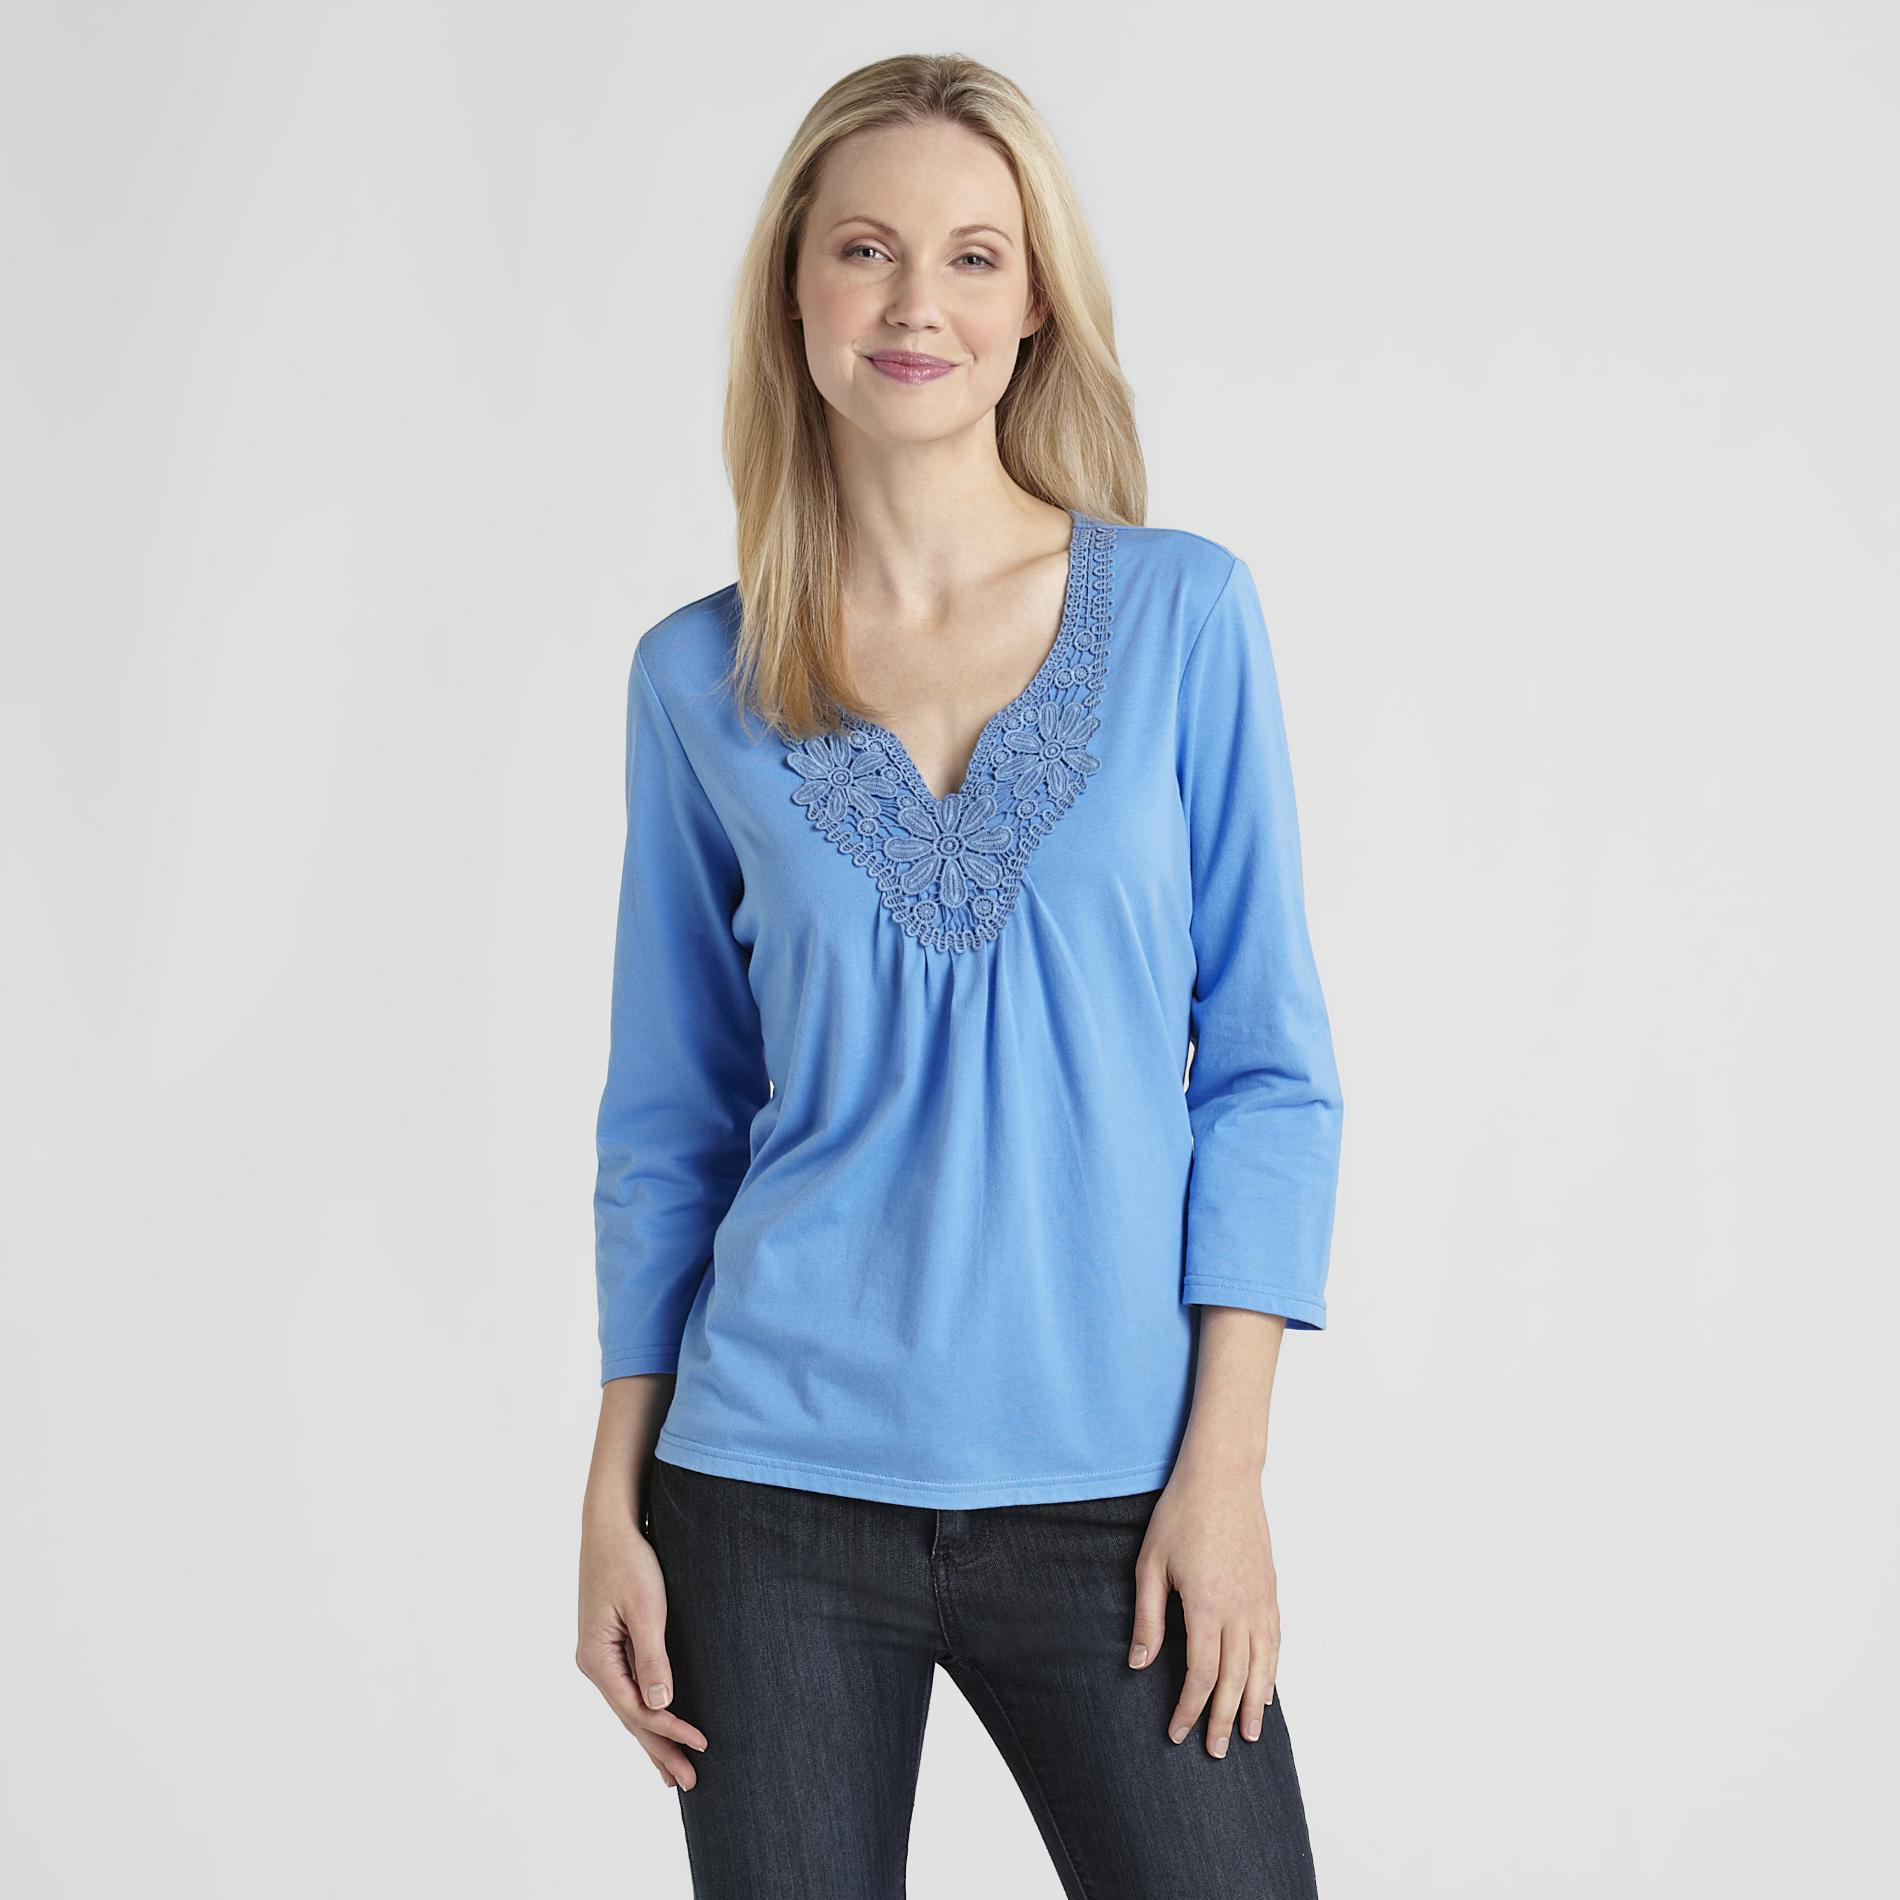 Basic Editions Women's Crochet Top at Kmart.com